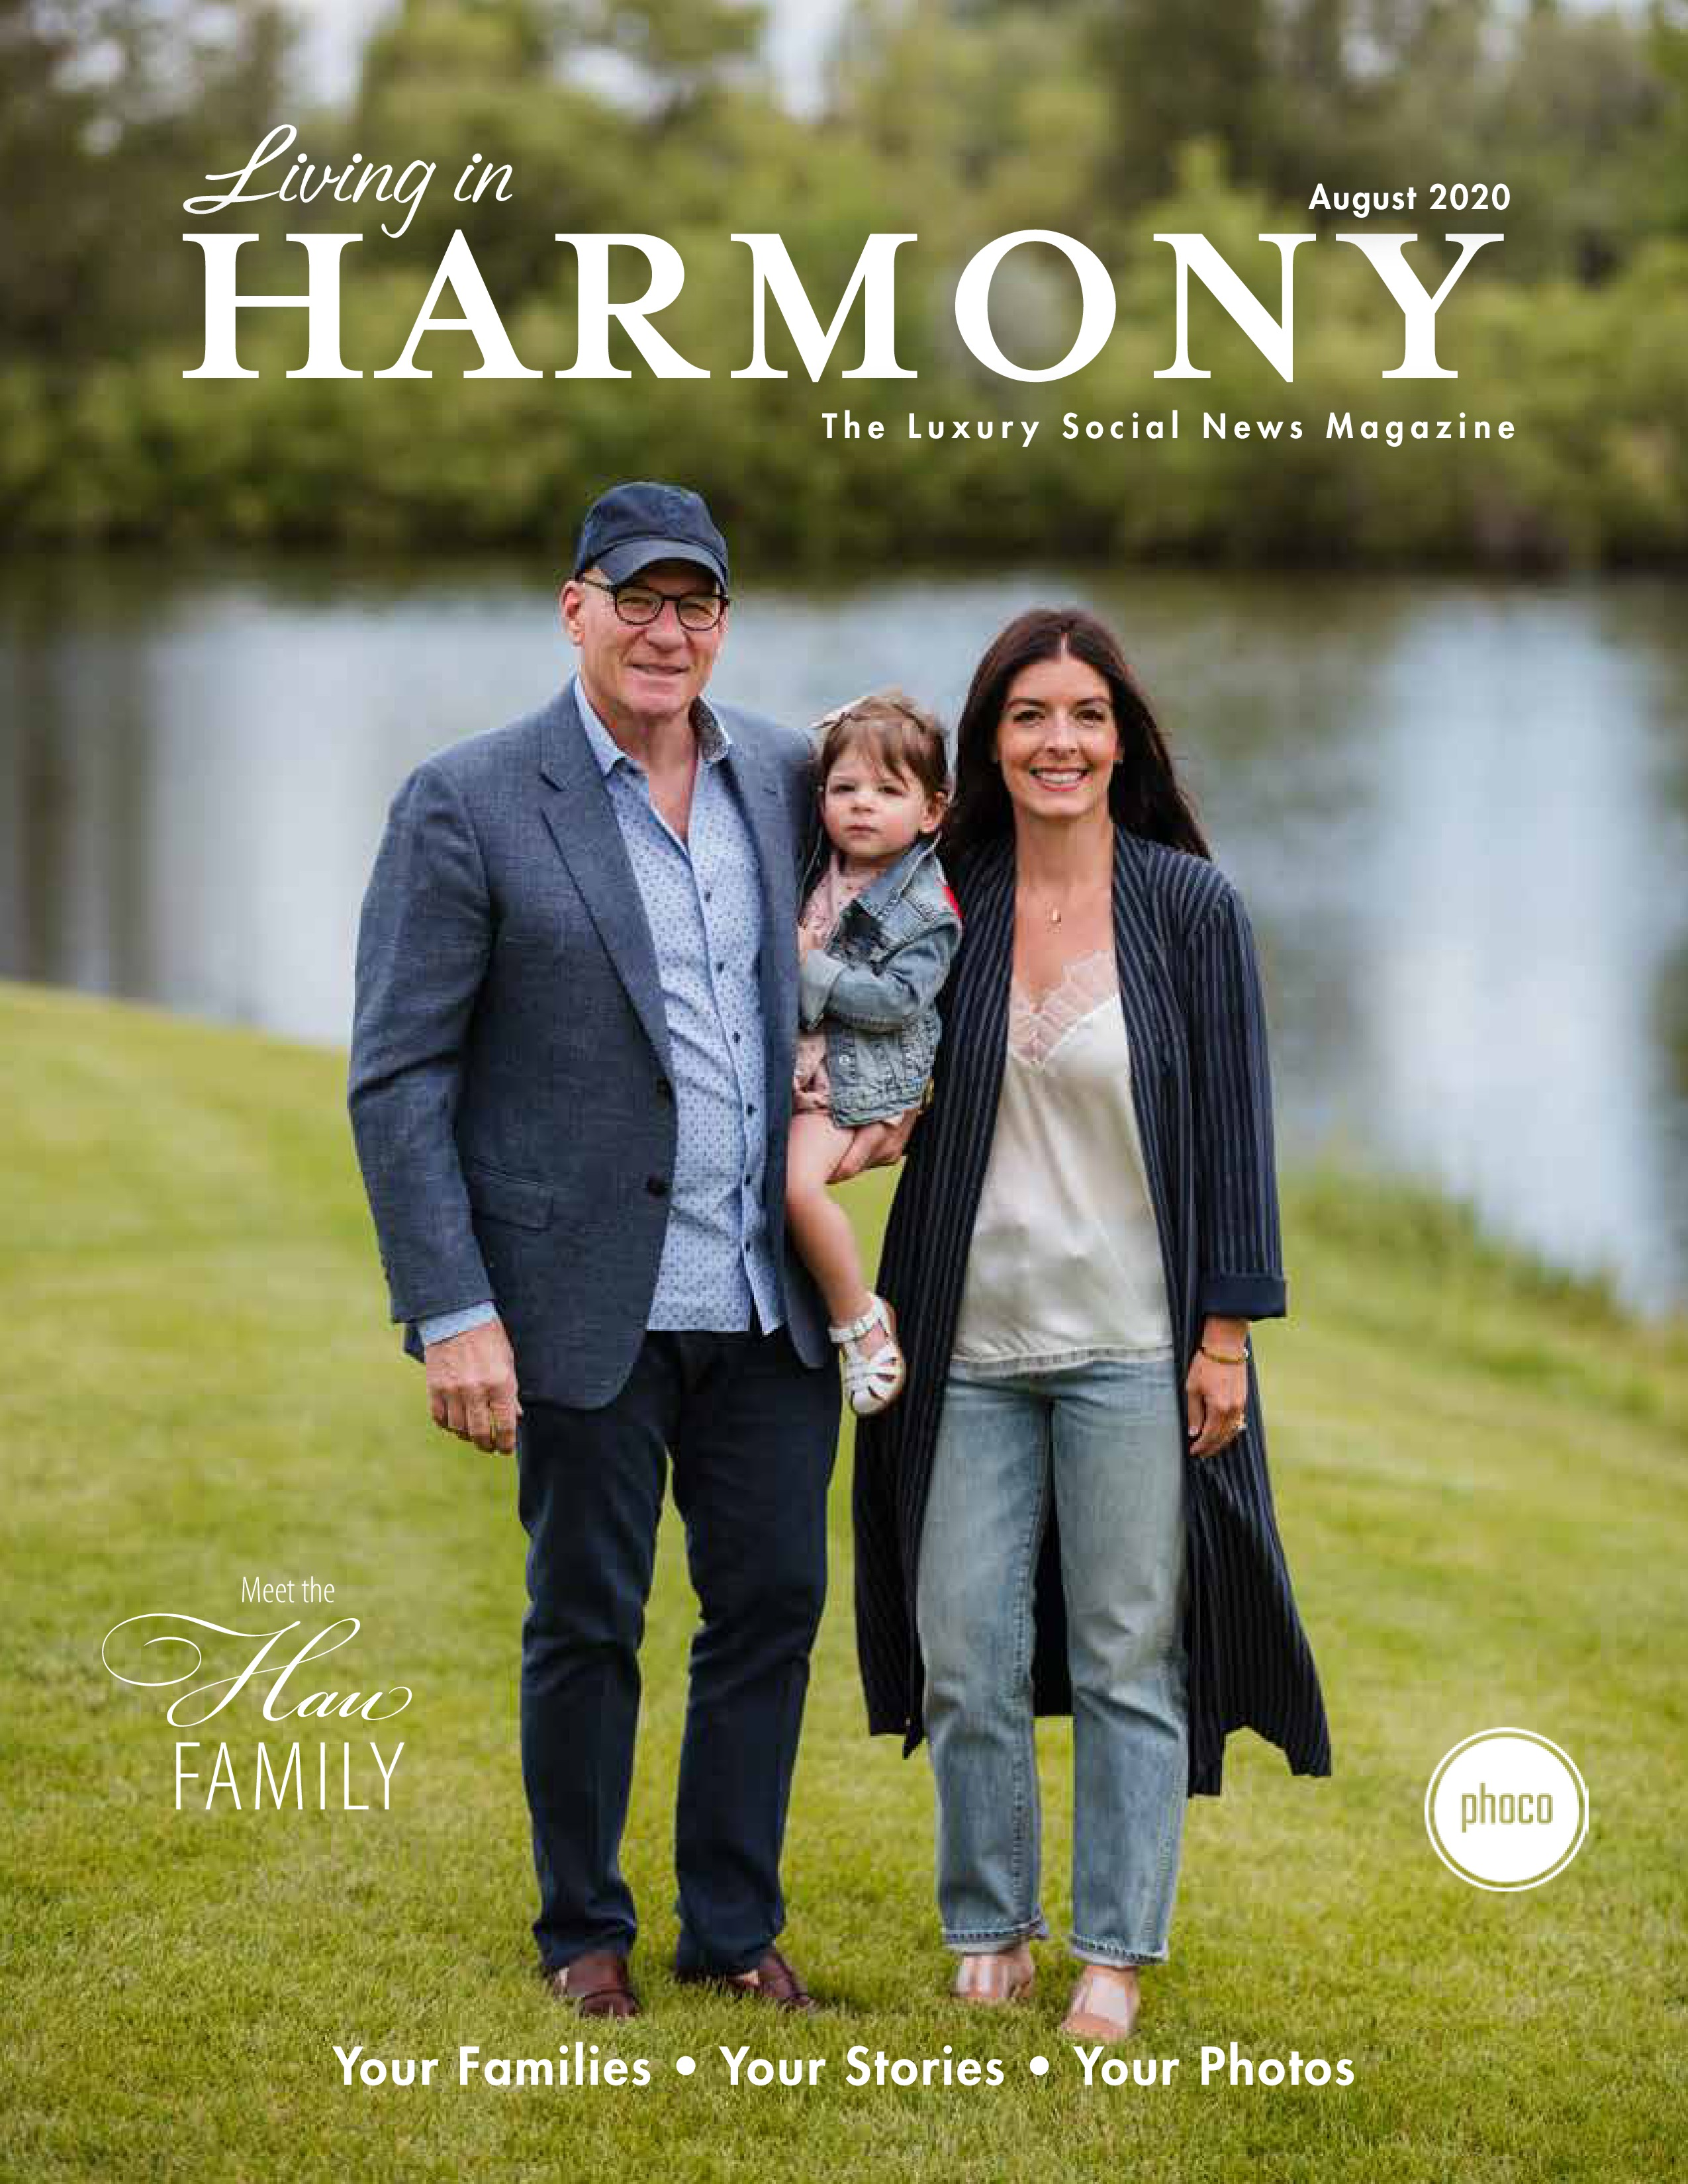 Aug 2020 living in harmony page 1